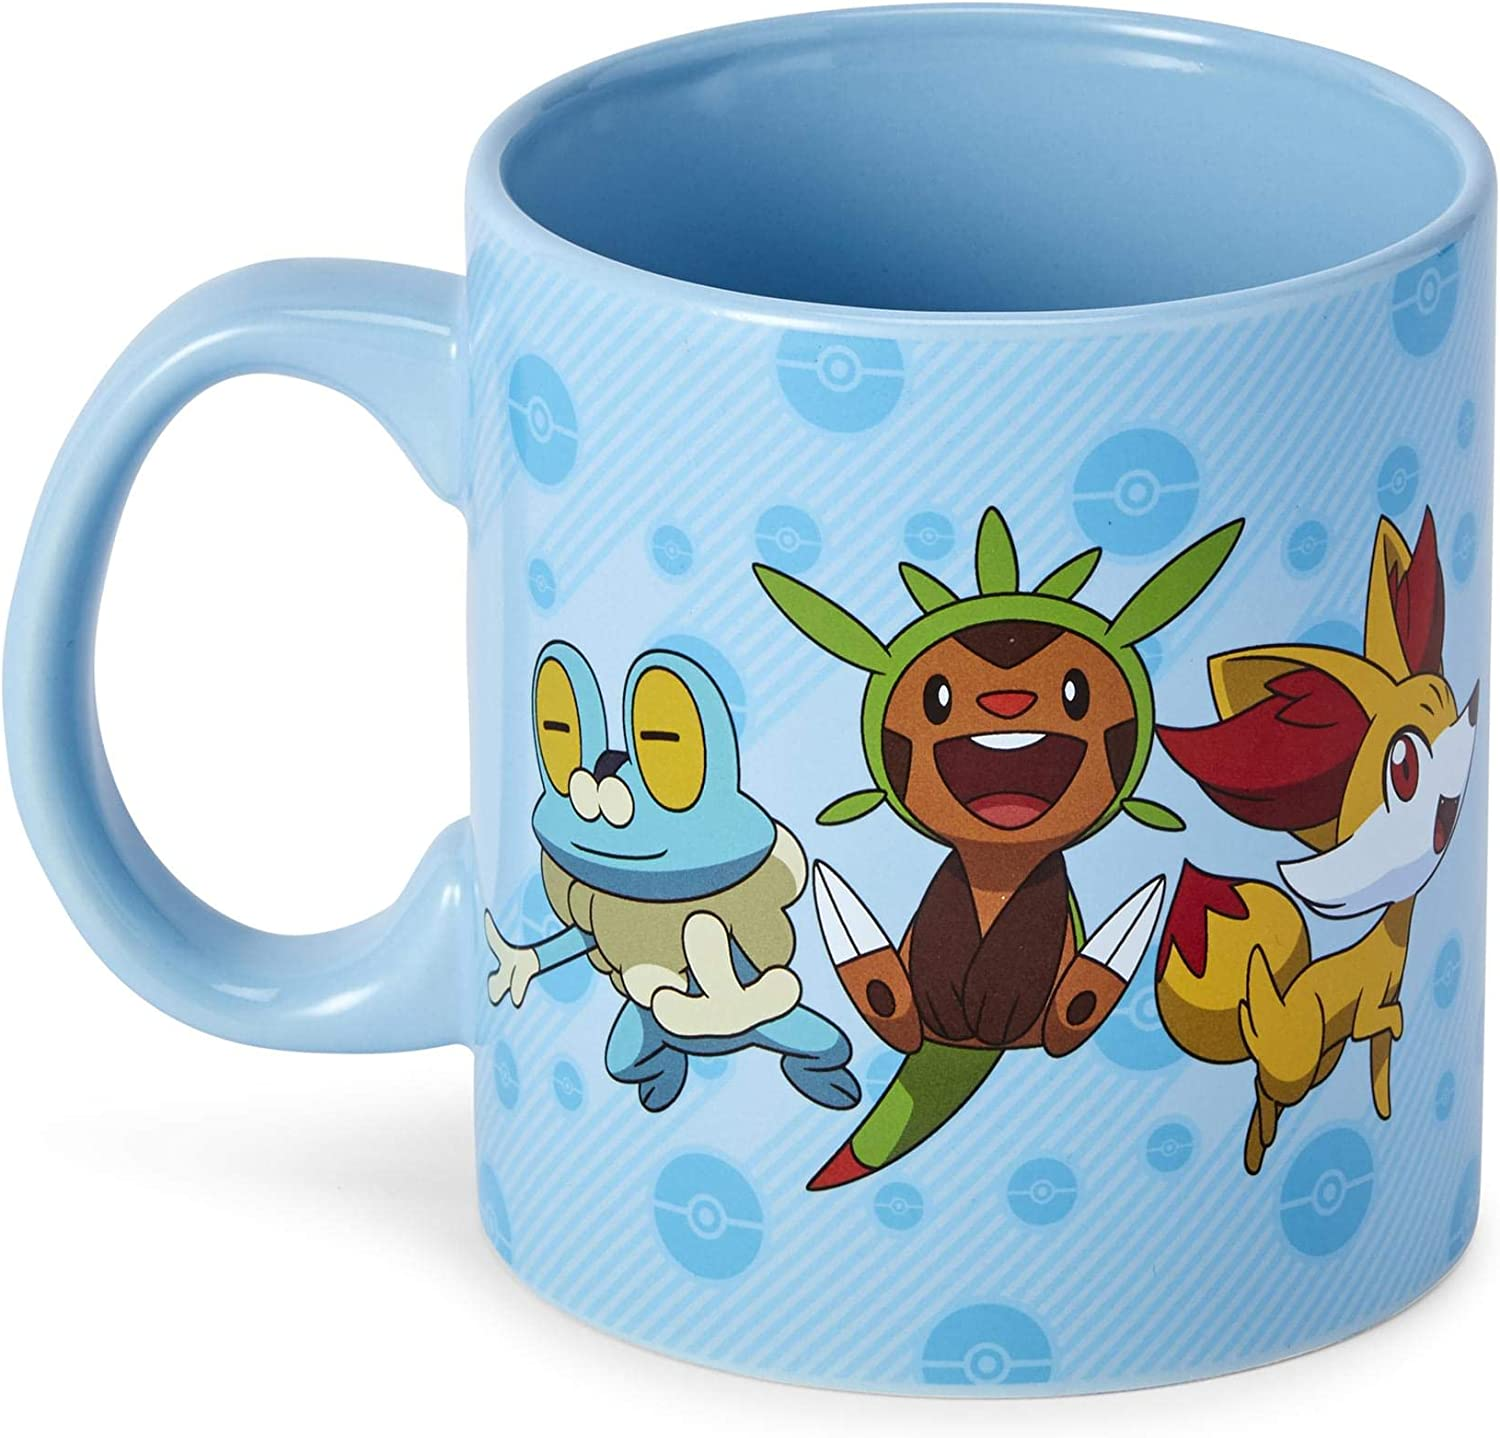 Official Pokemon XY Group Starters Mug - 20-Ounce Blue Ceramic Cup for Hot Coffee, Tea, Cocoa - Novelty Drinking Container - Perfect for Home, Office, Parties - Licensed Nintendo Merchandise